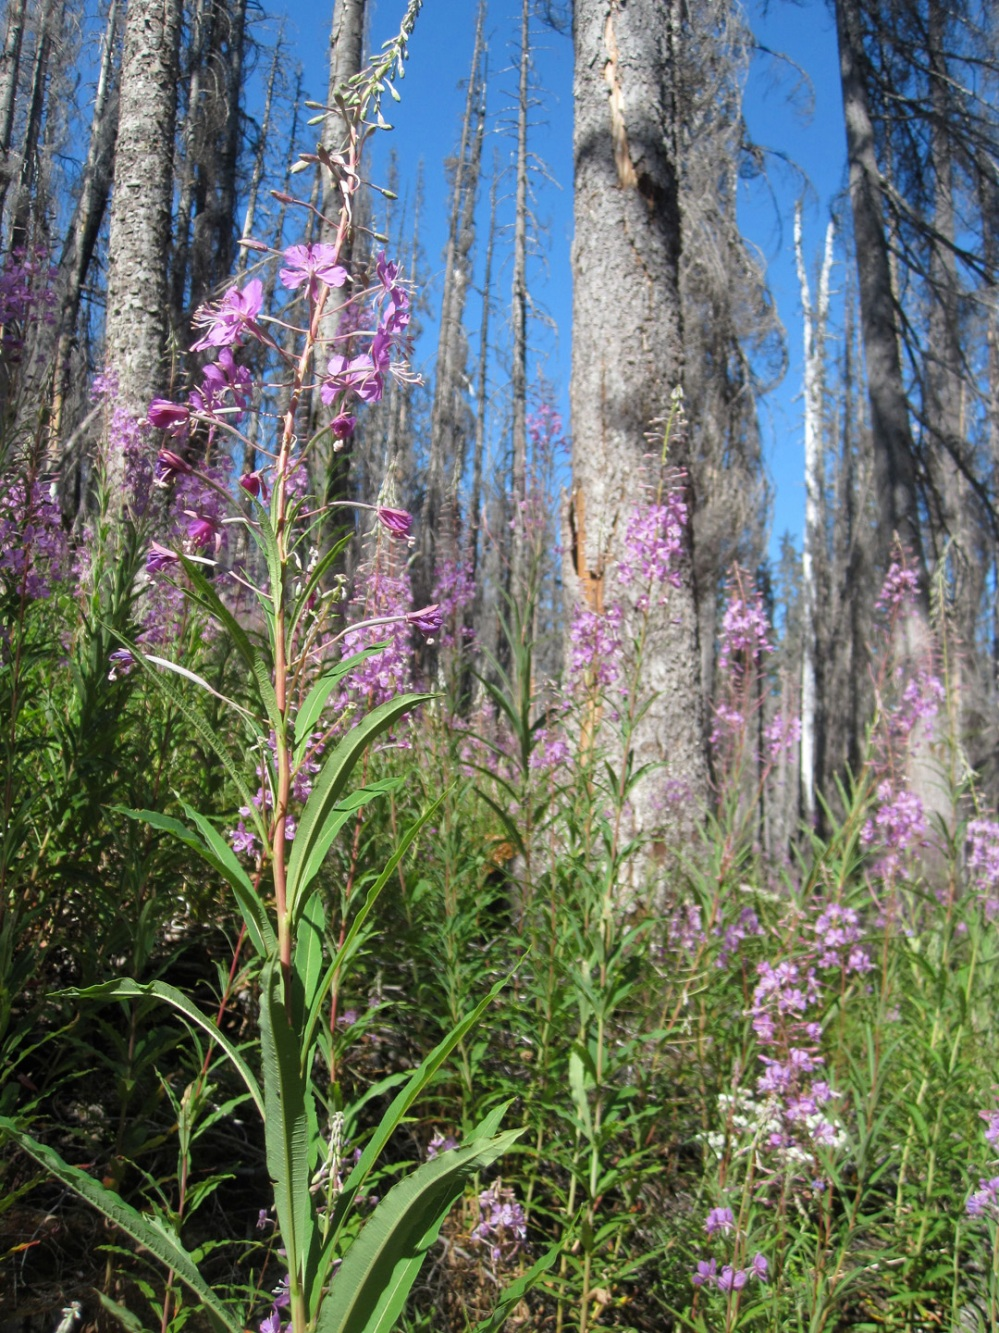 Fireweed in the Lemah burn